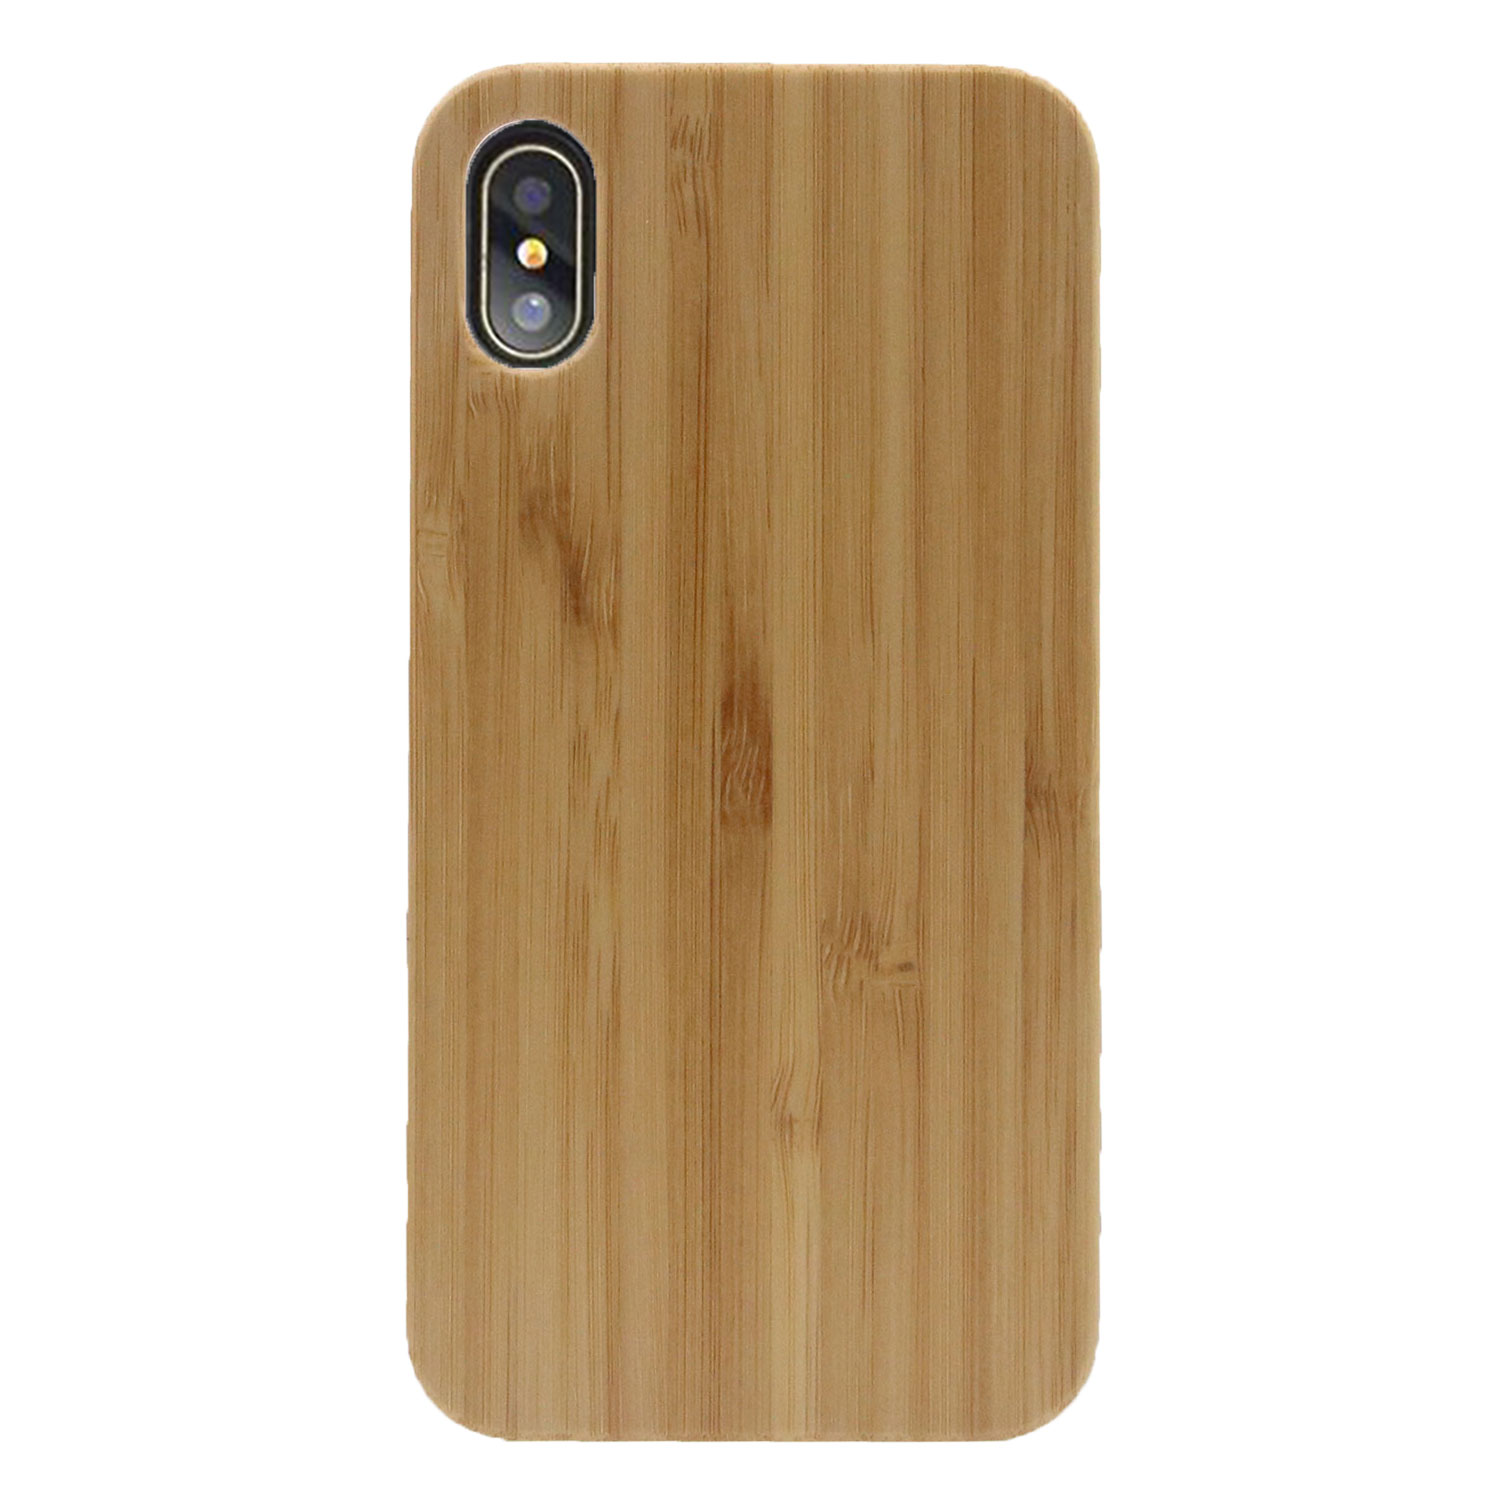 Bamboo+PC Material Case For Apple iPhones 8, Compatible Brand bamboo phone case for iphone 8+